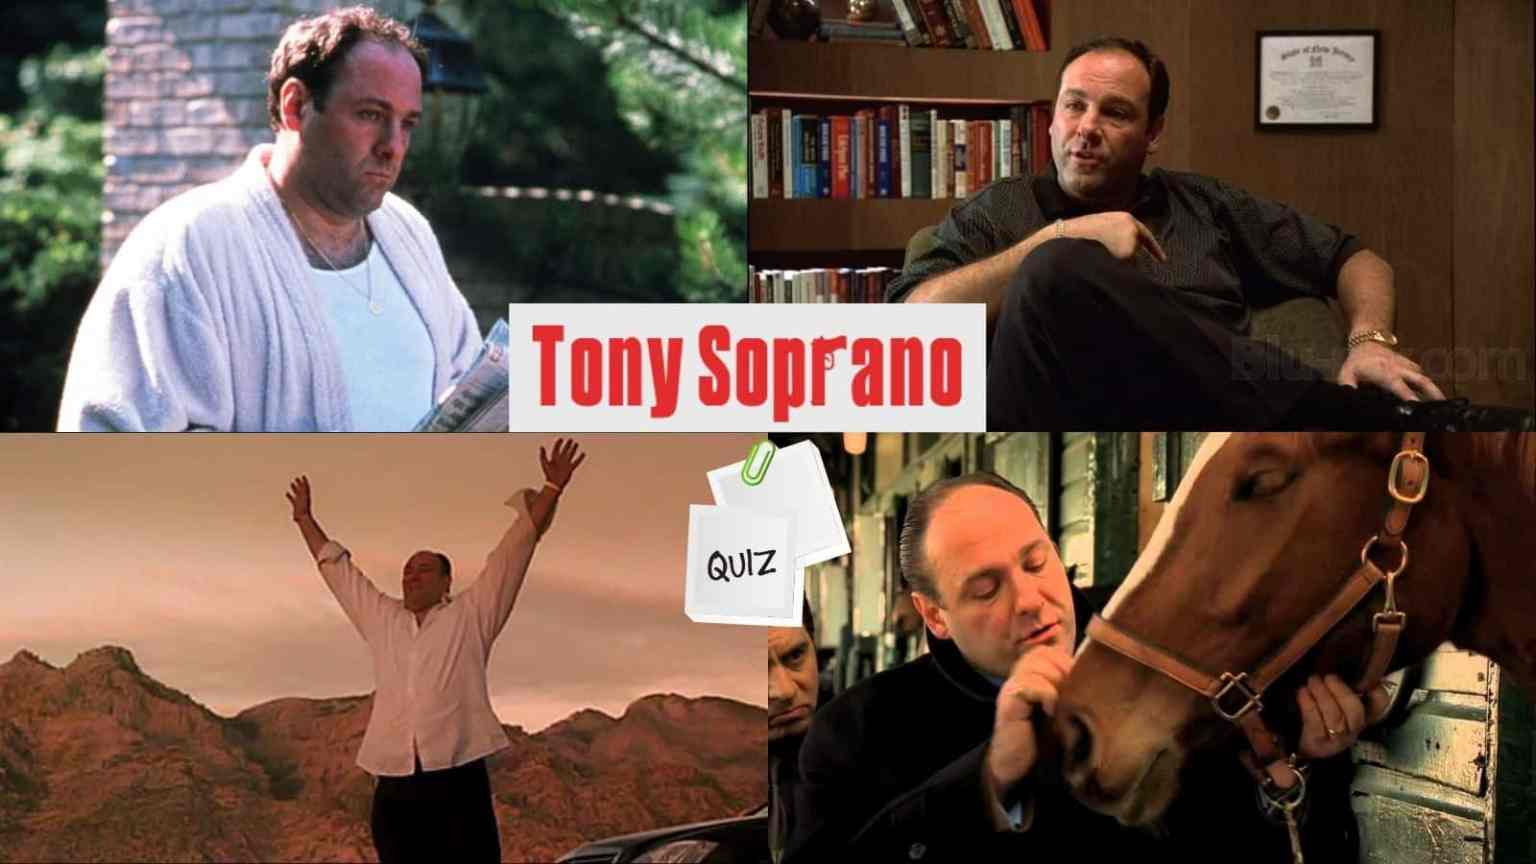 How Much Do You Know About Tony Soprano?